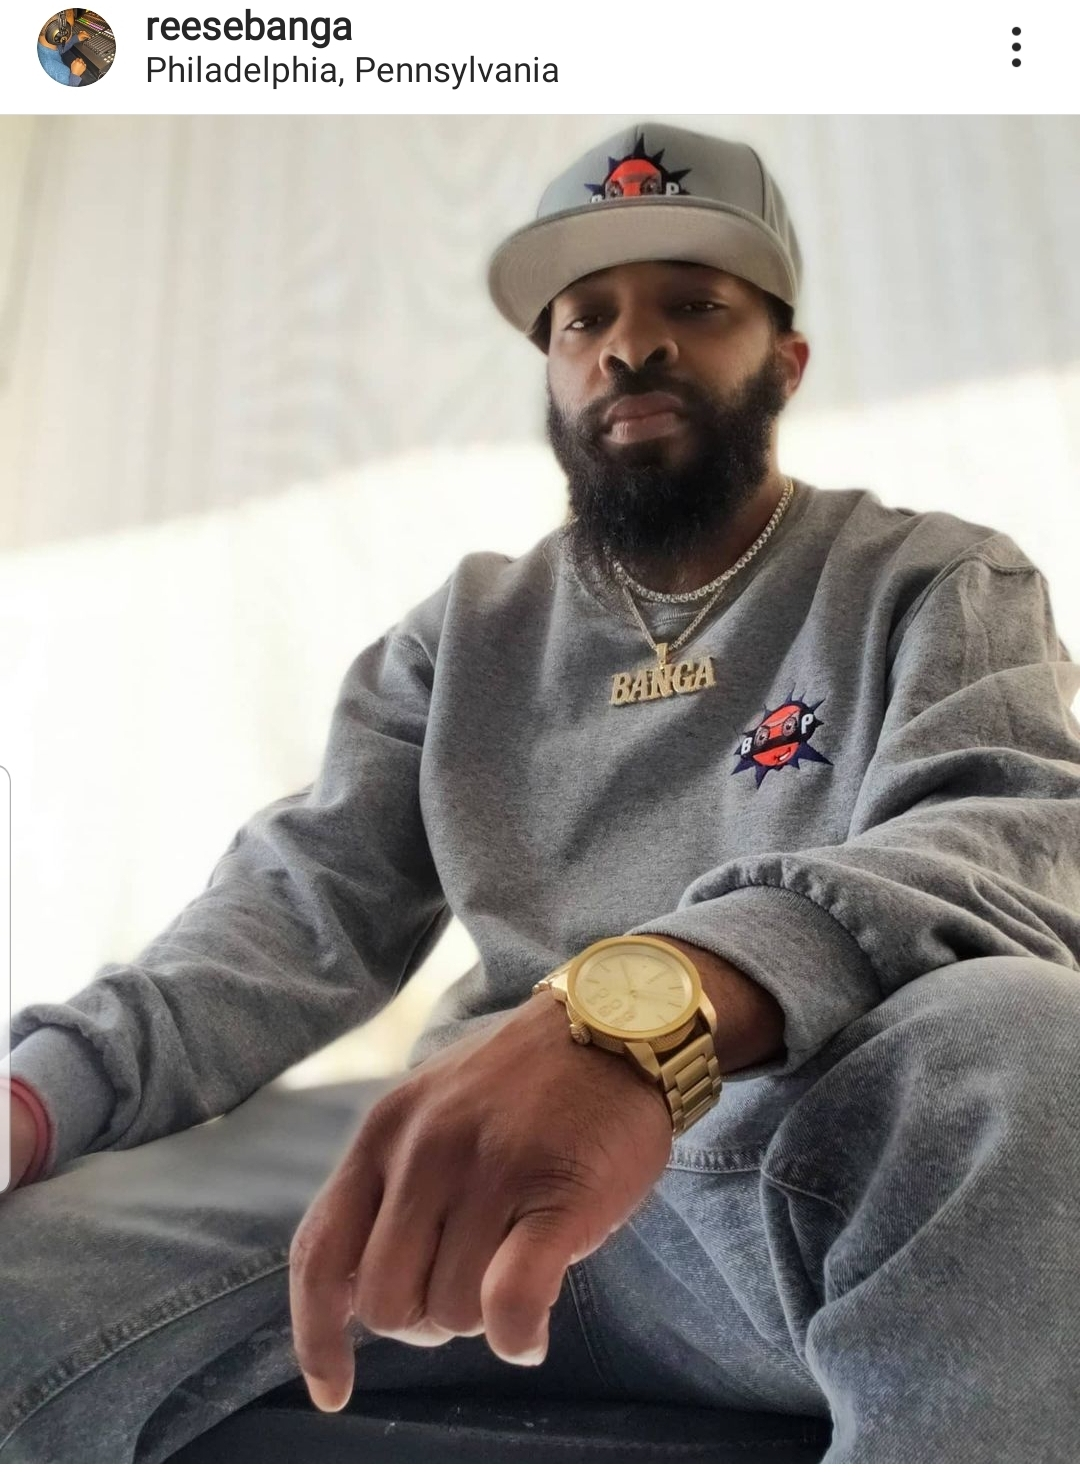 Reese Banga – Carry it was produced by PantherBred